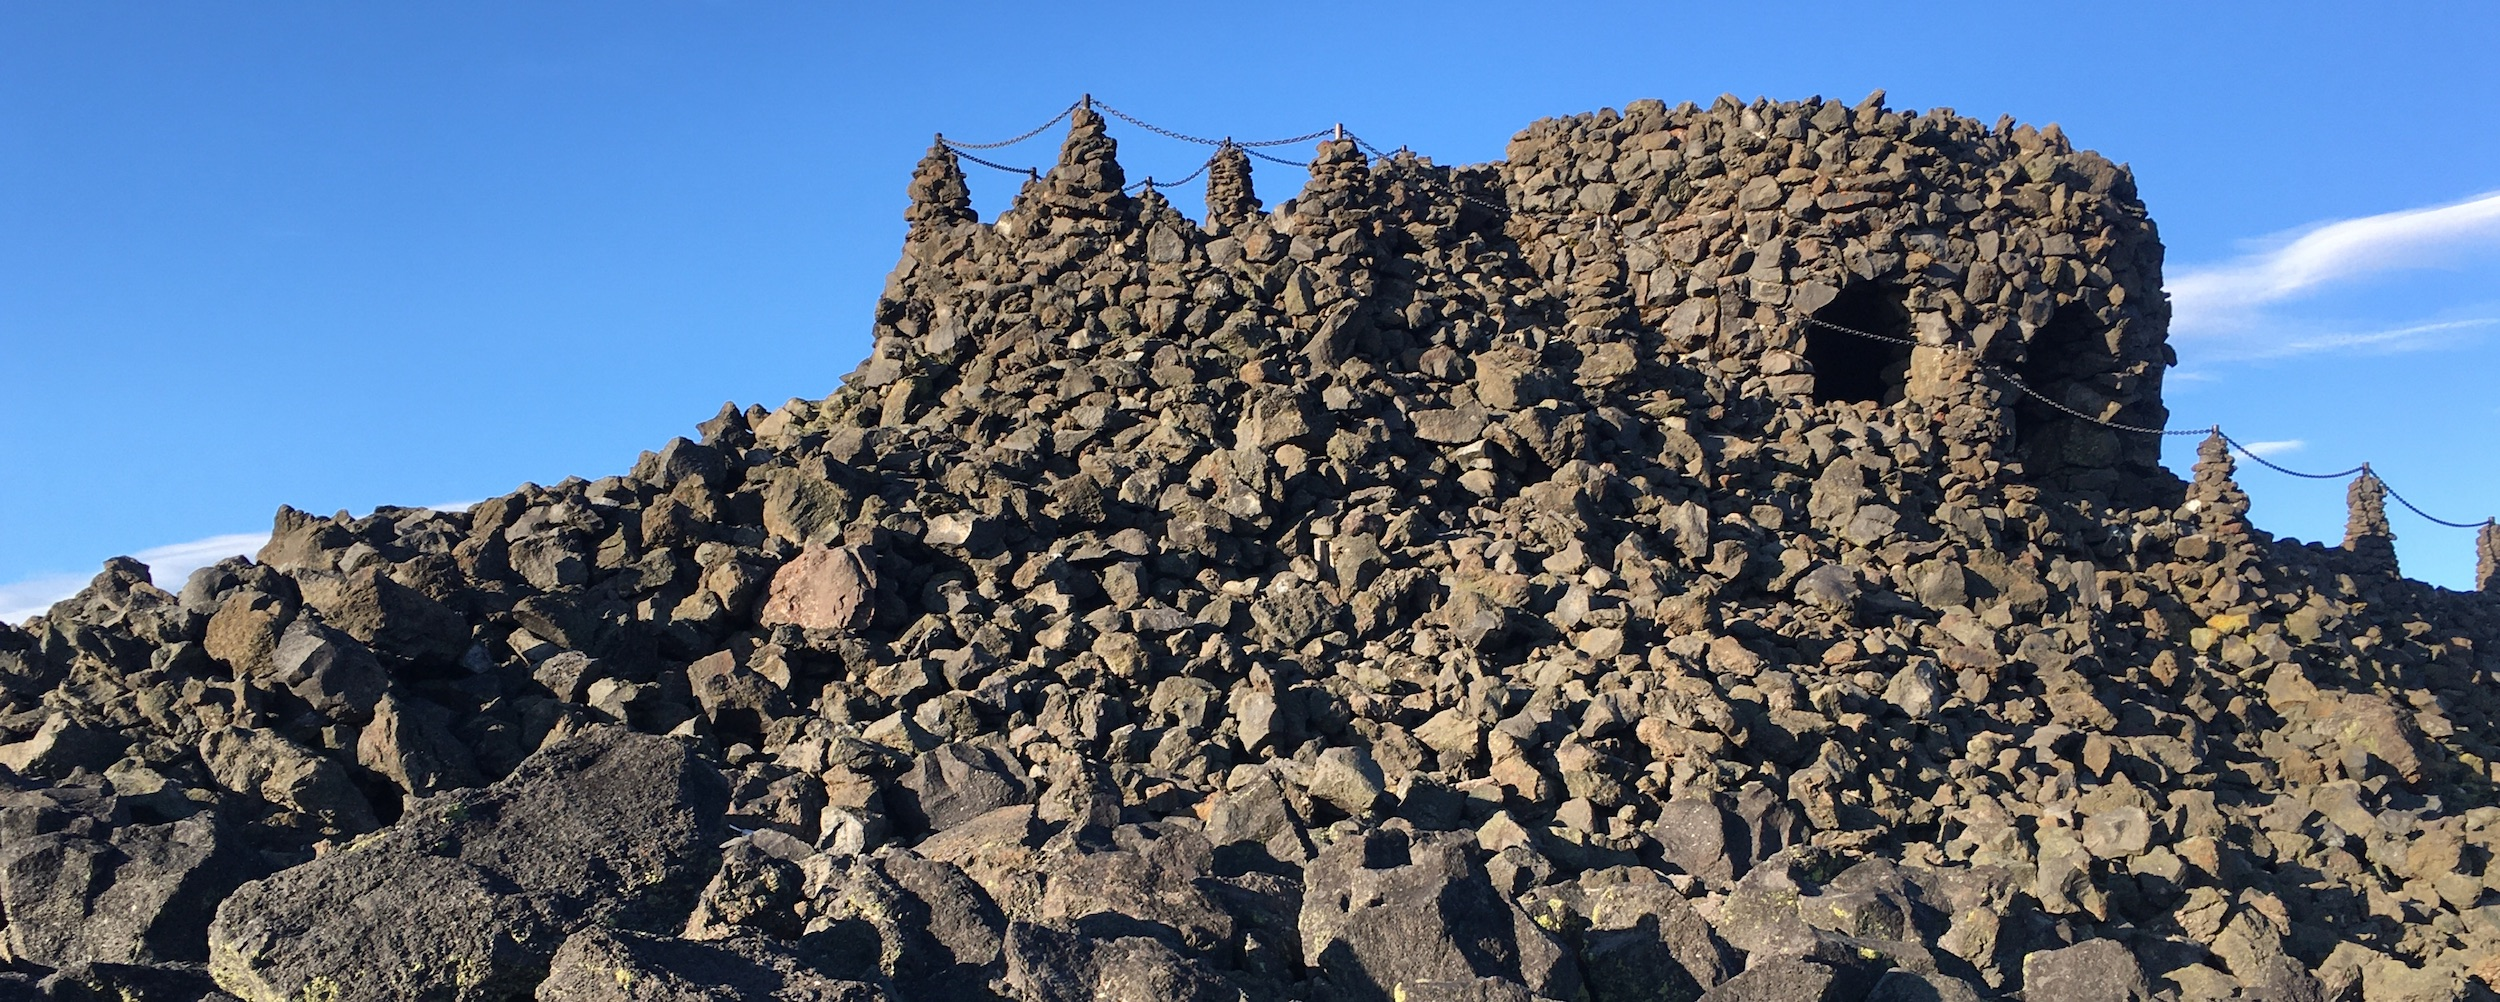 lava rock pile / hill with observatory built into rock at top